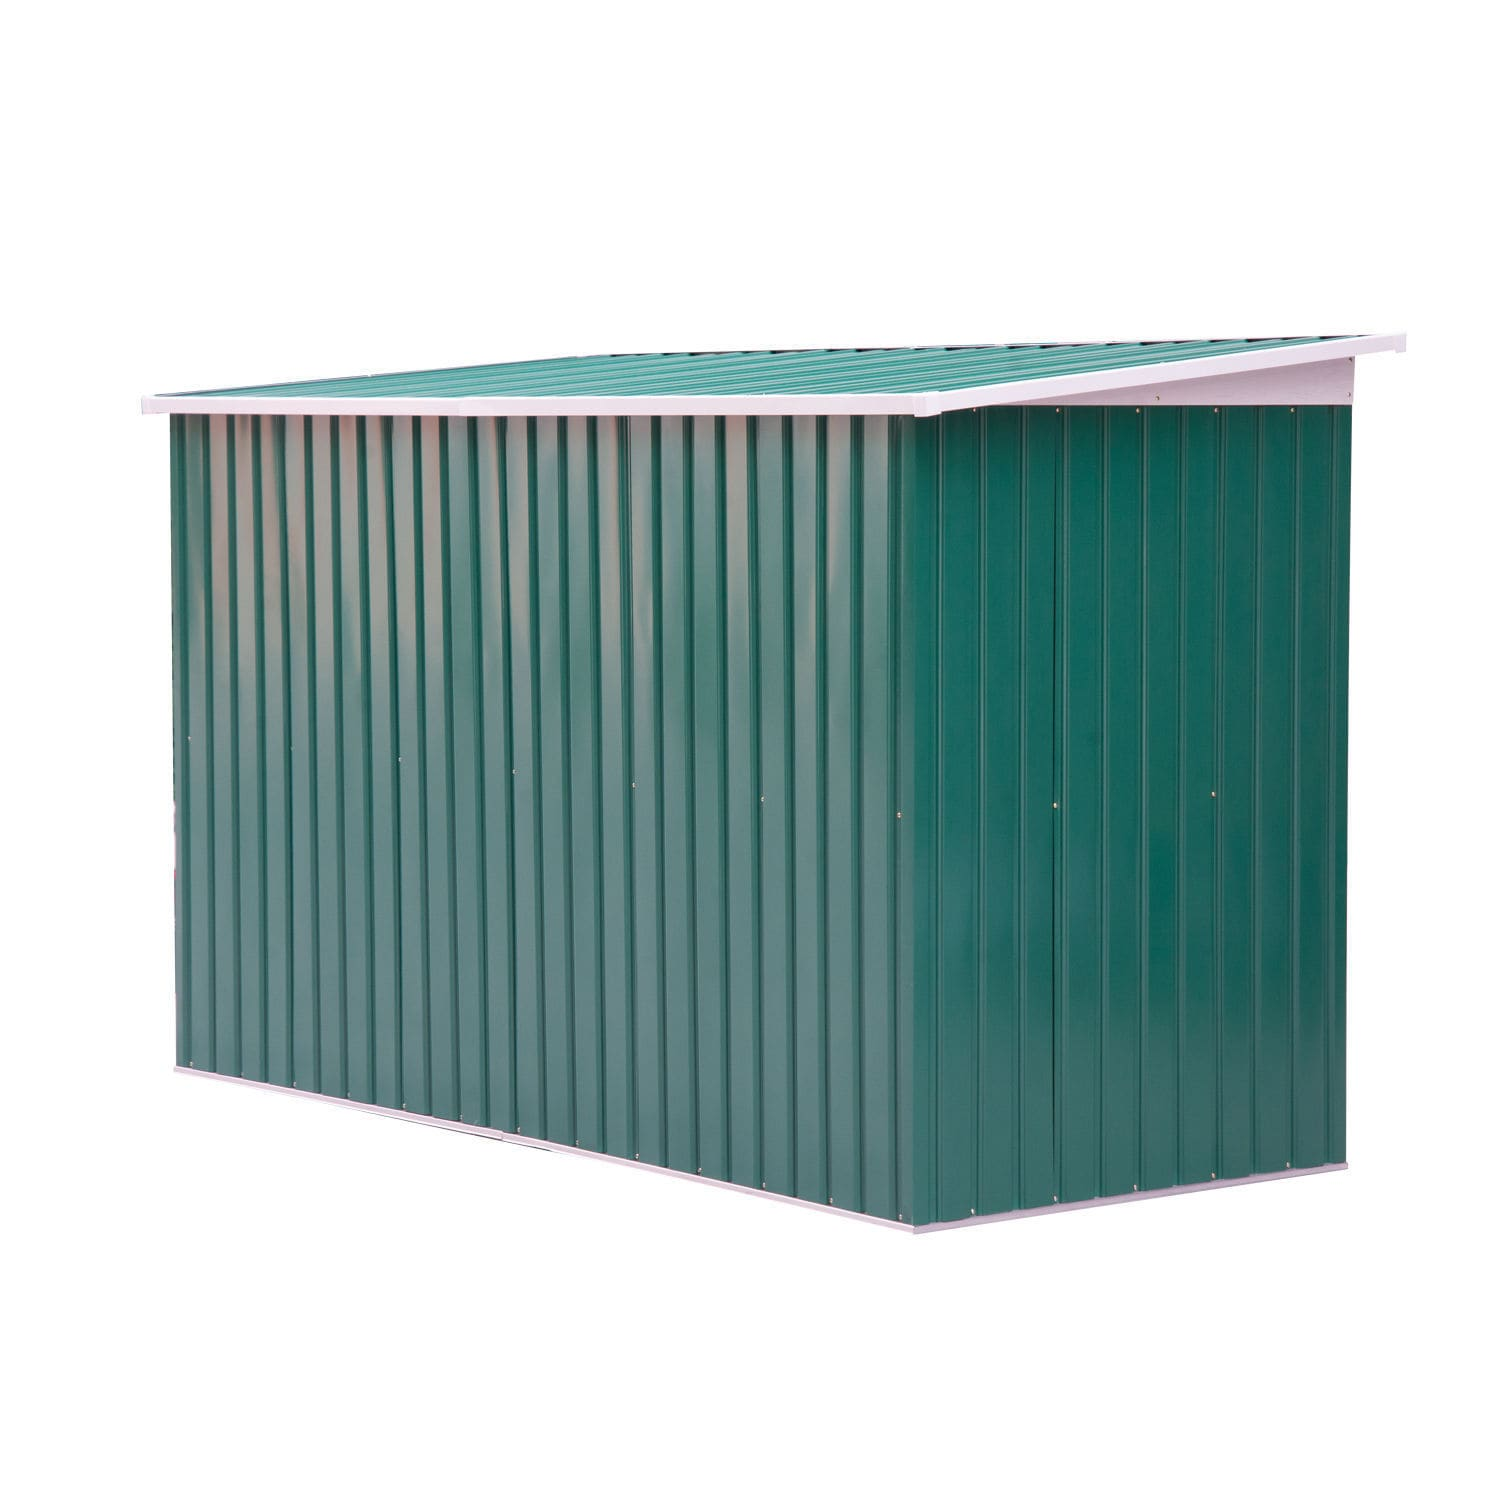 Outsunny Outdoor Green/White Metal 9\' x 4\' Garden Storage Shed ...